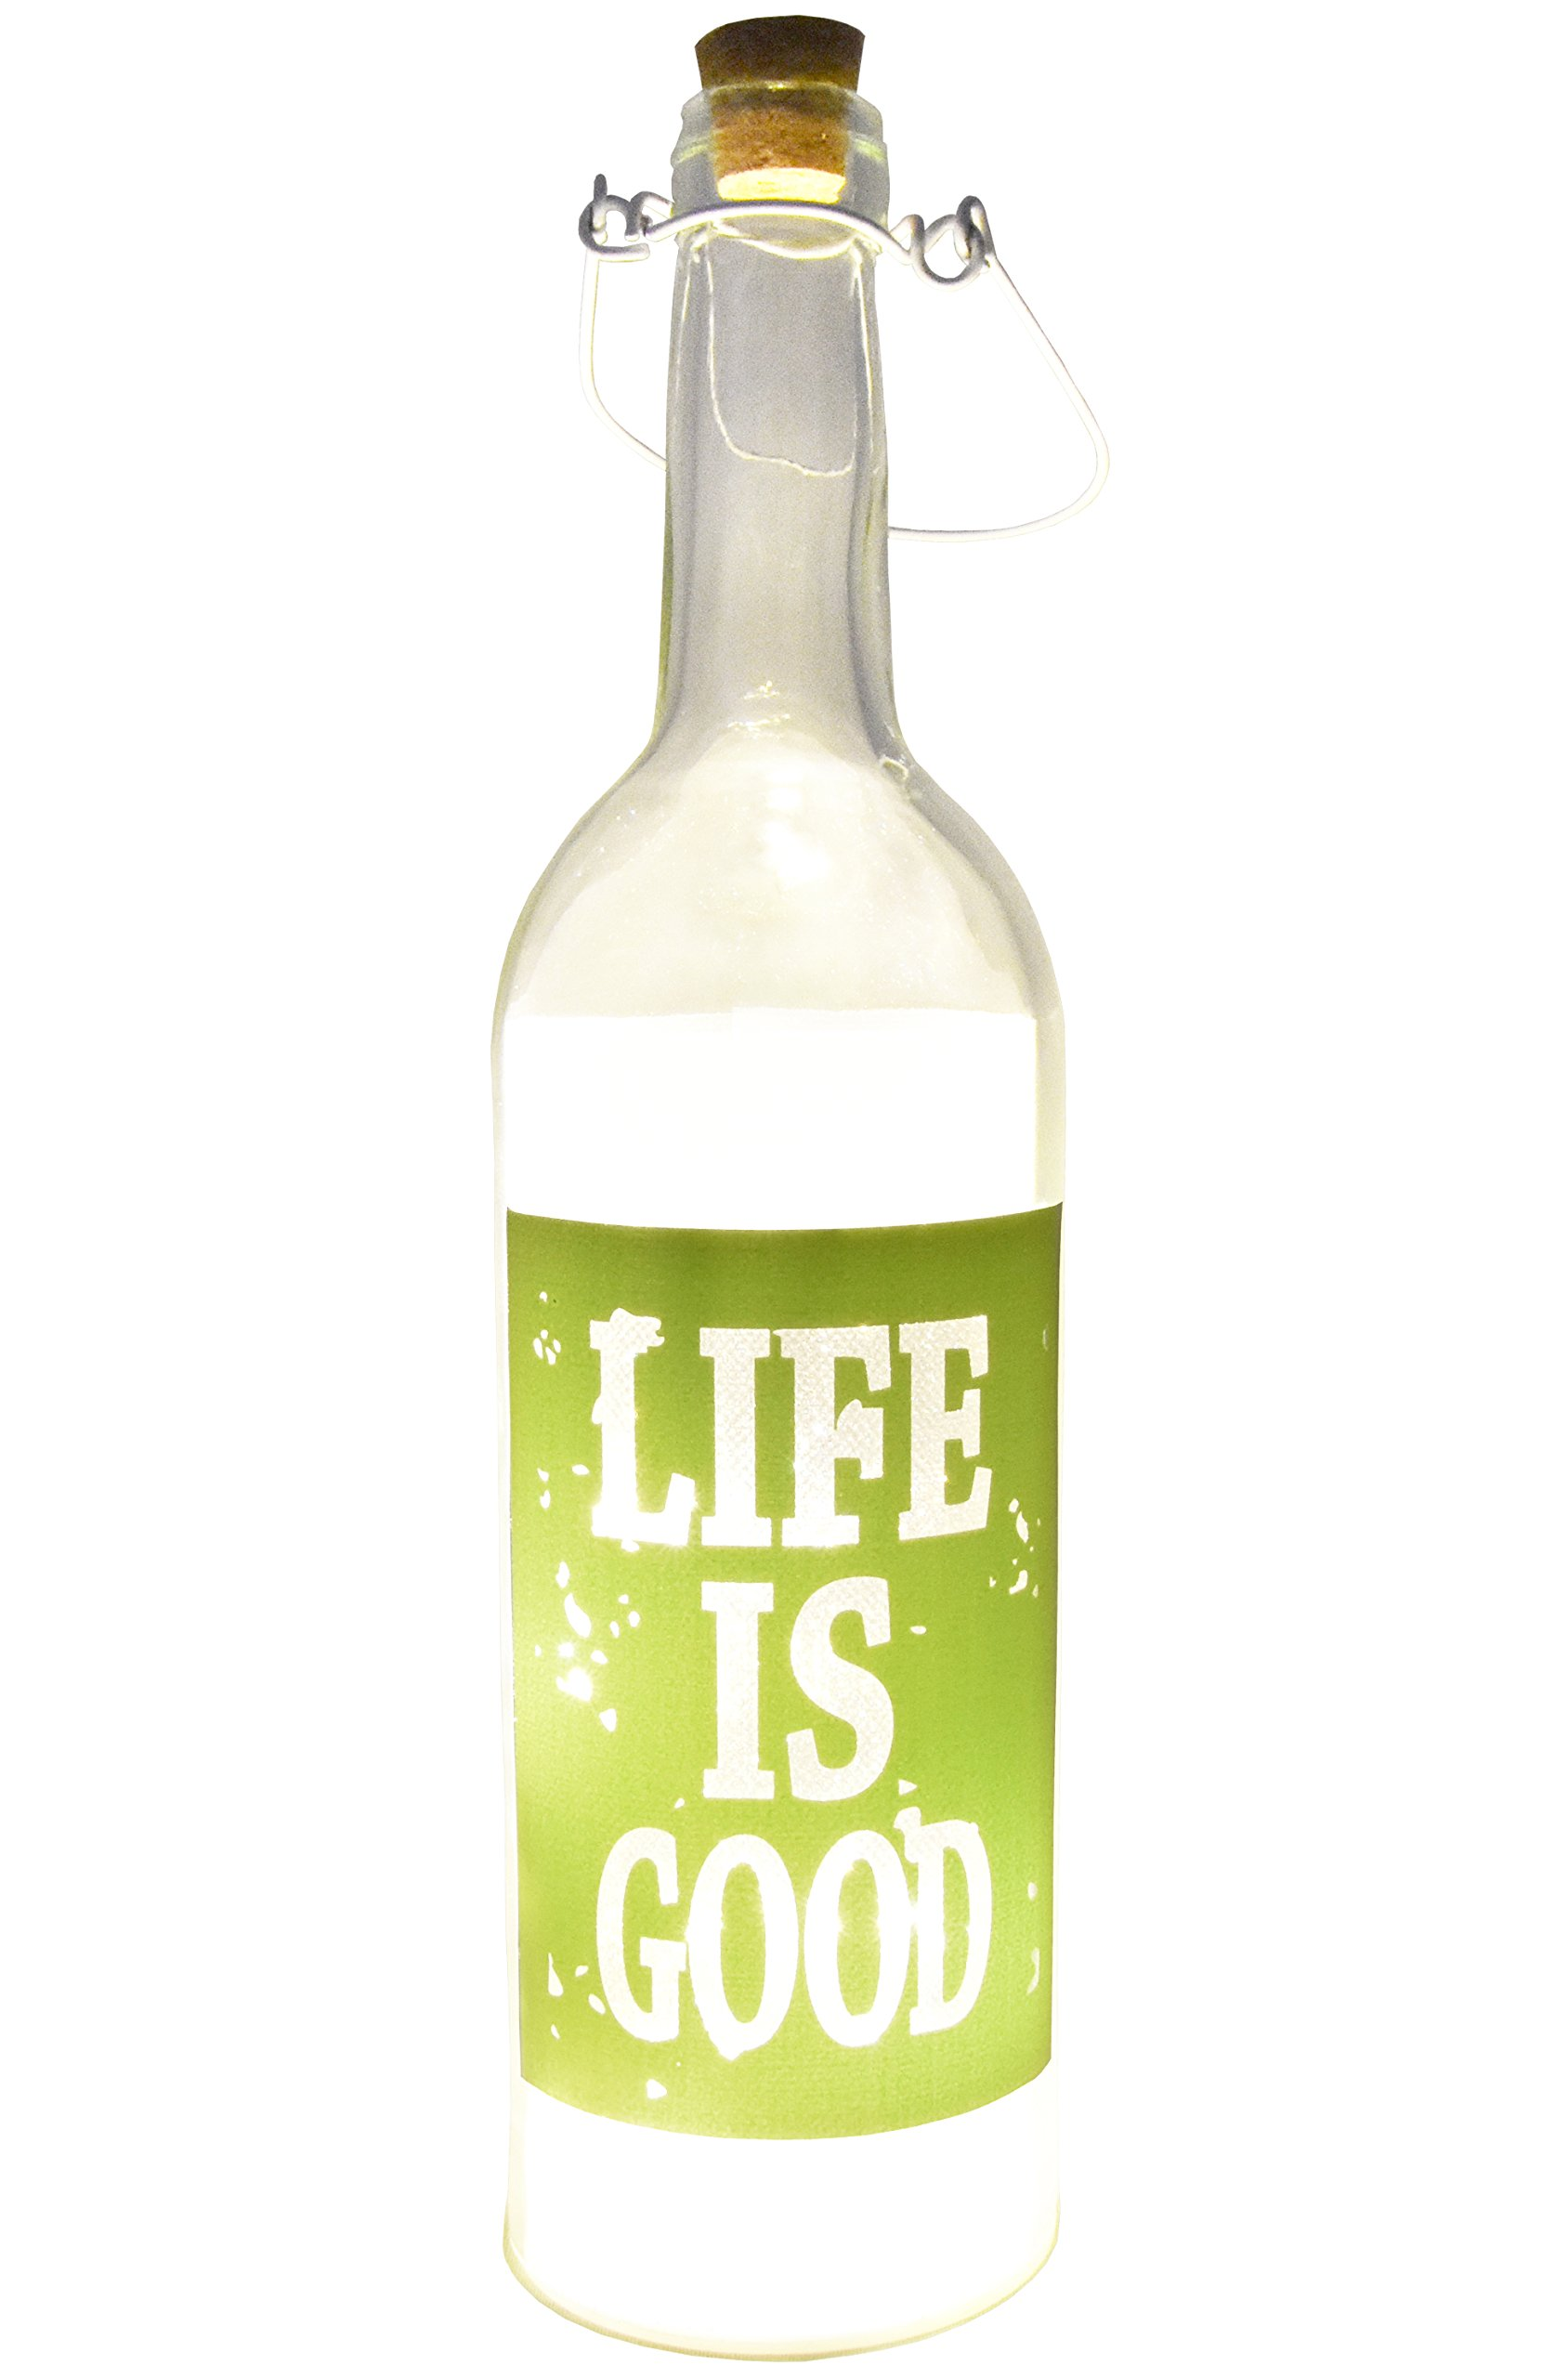 Fairy Lights LED Lamp Decorative Wine Bottle Light Lamps for Women, Indoor and Outdoor Home Decor (Green,Life is Good)